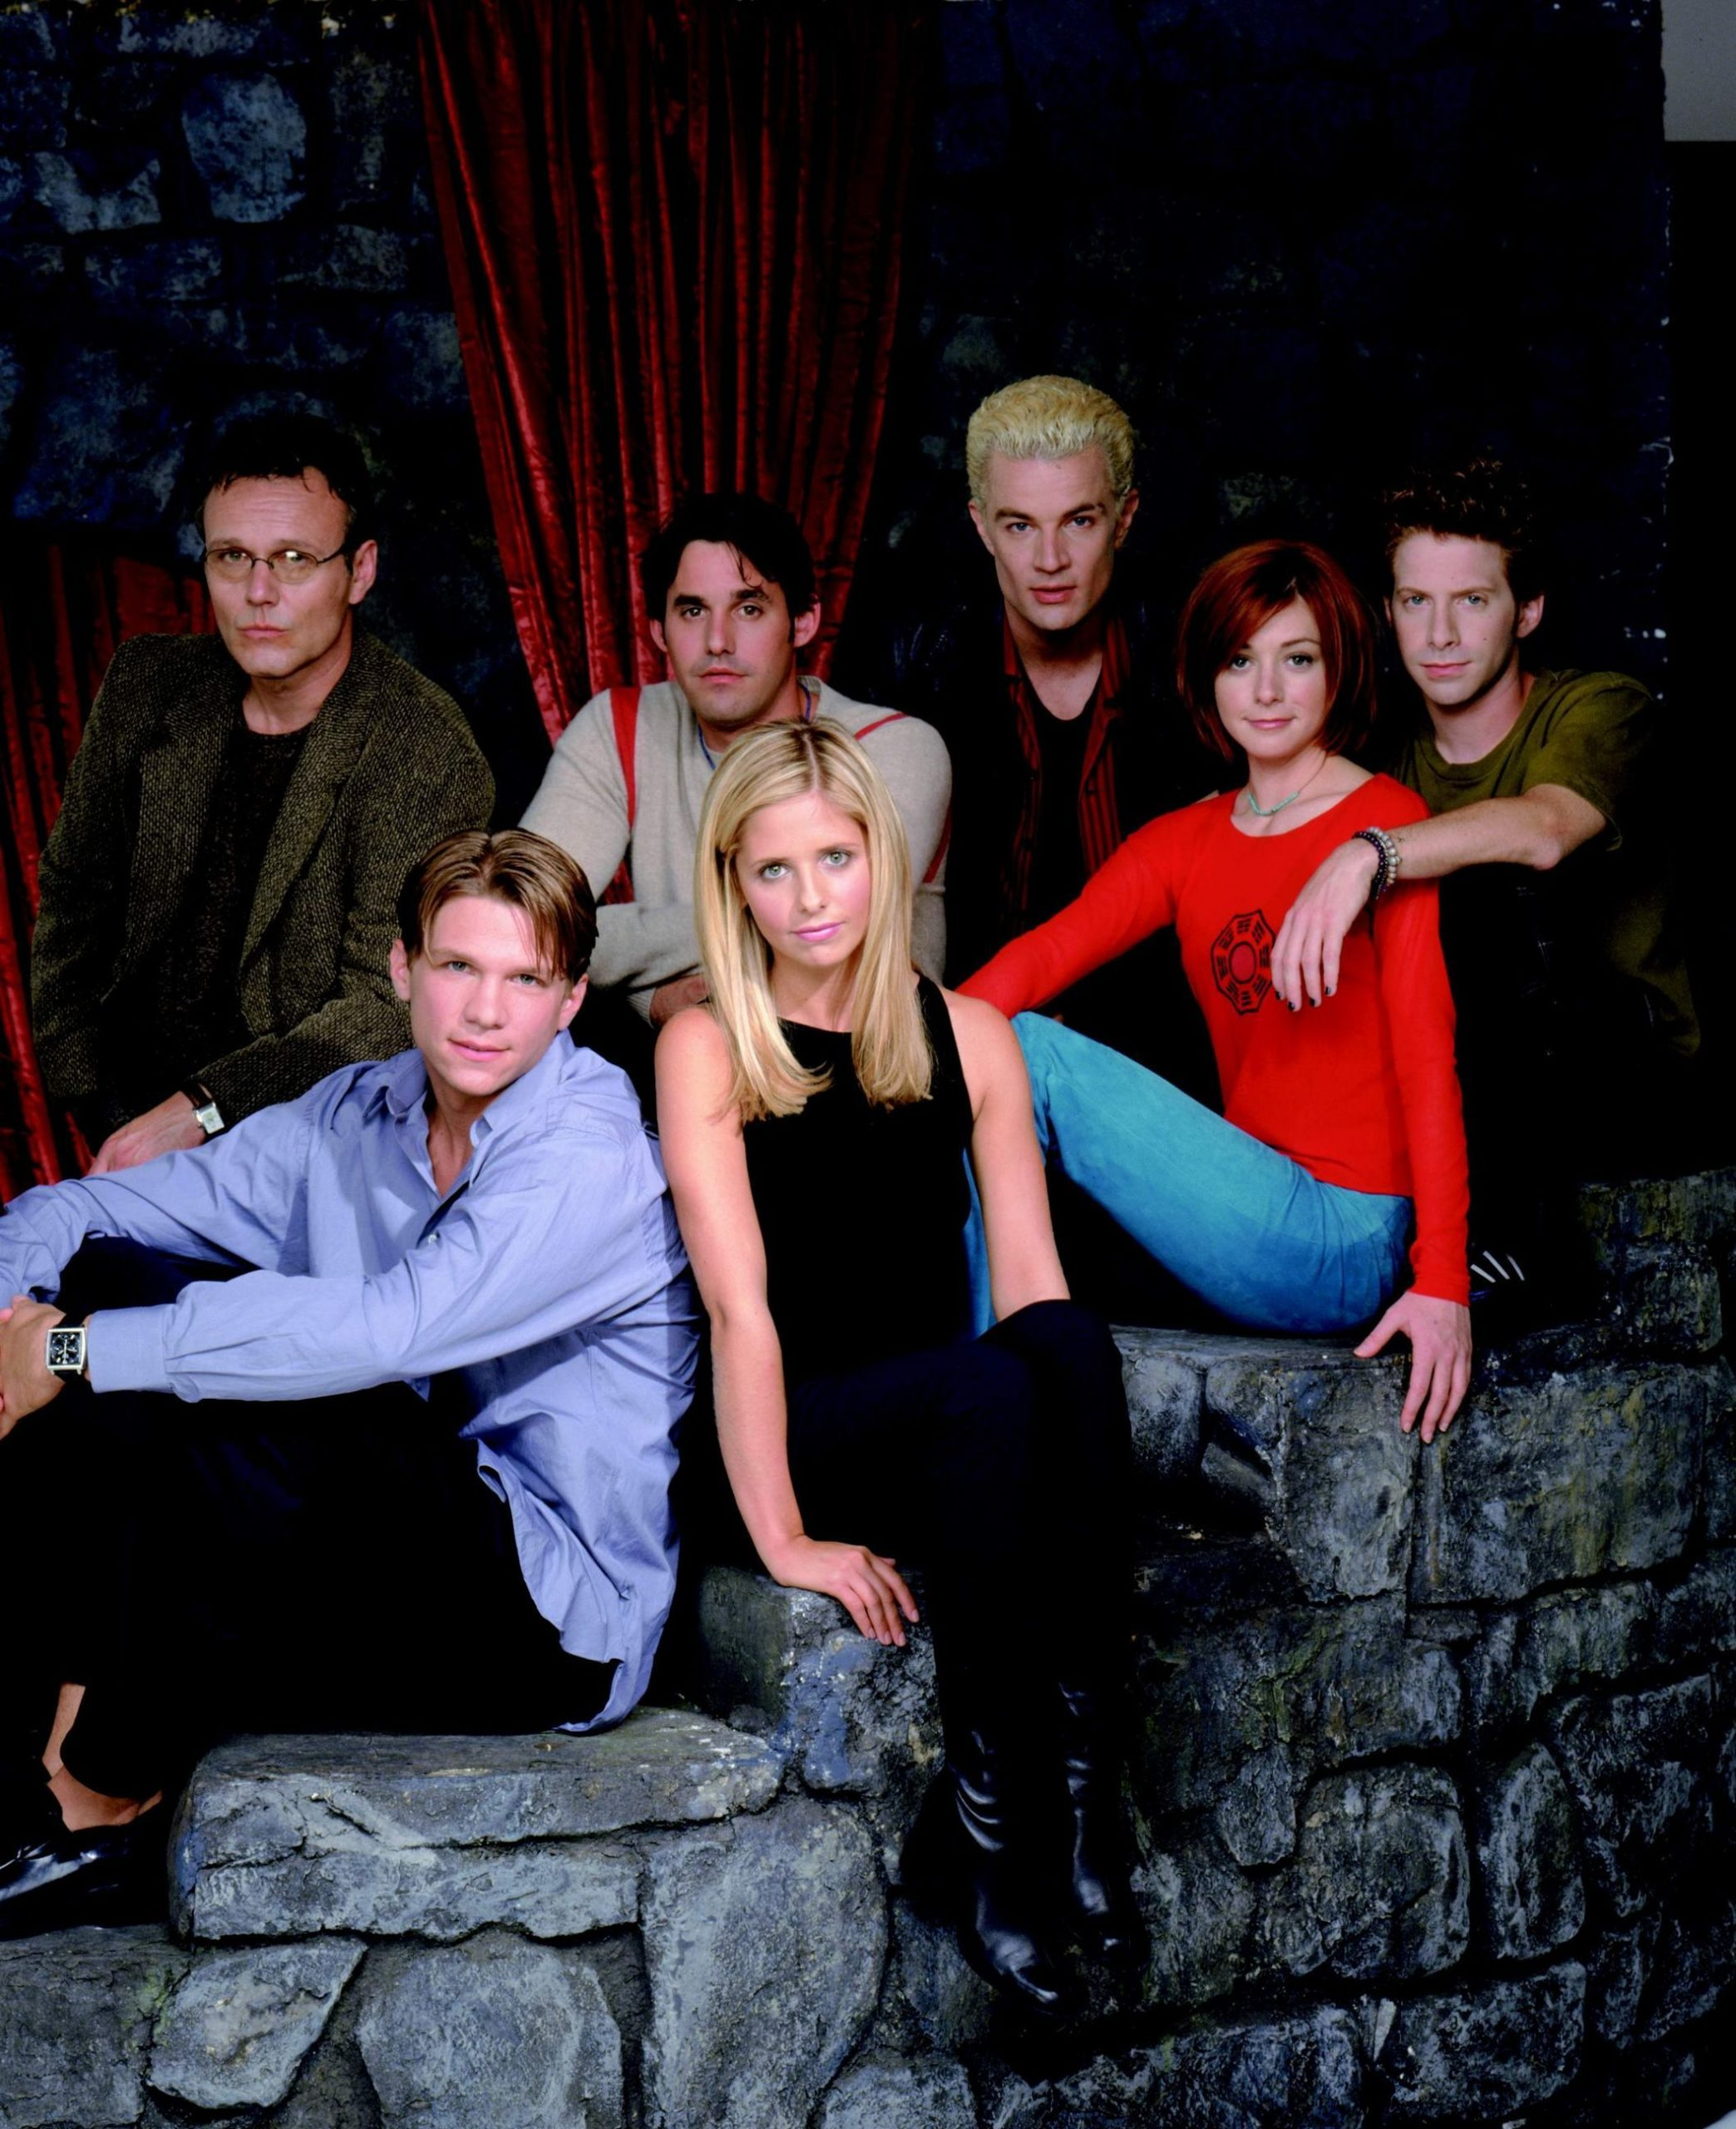 La Saison 4 de Buffy contre les vampires : Changements en perspective !